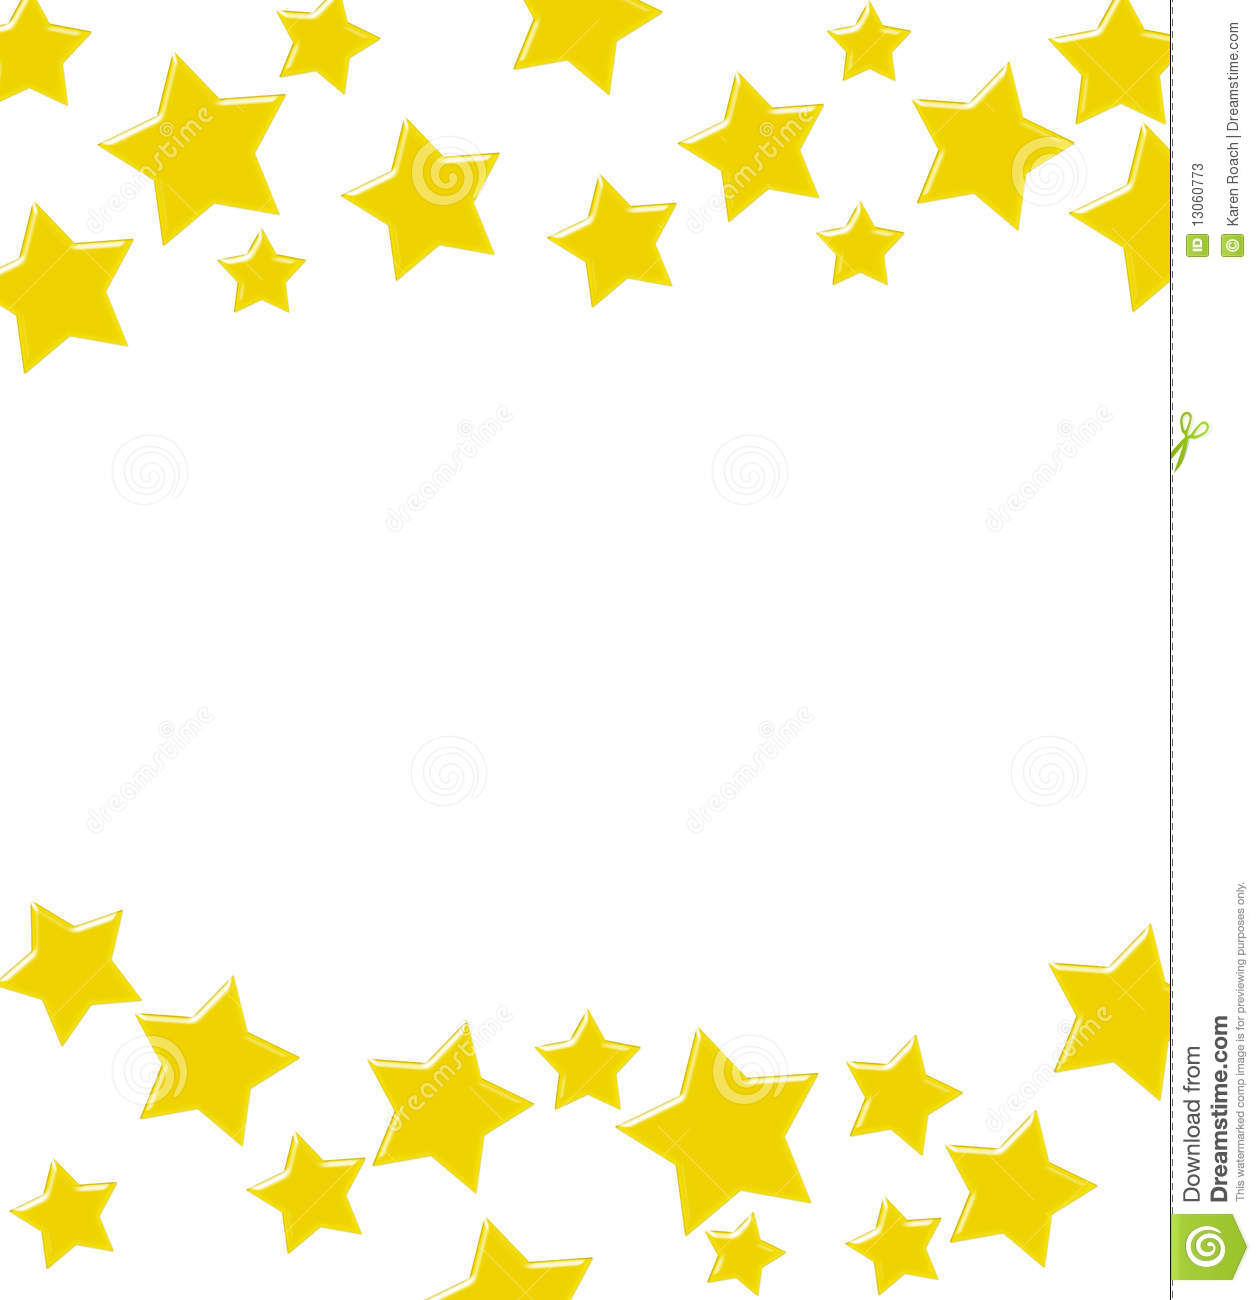 Frame clipart star Gold%20scroll%20frame%20clip%20art Clipart Panda Images Free